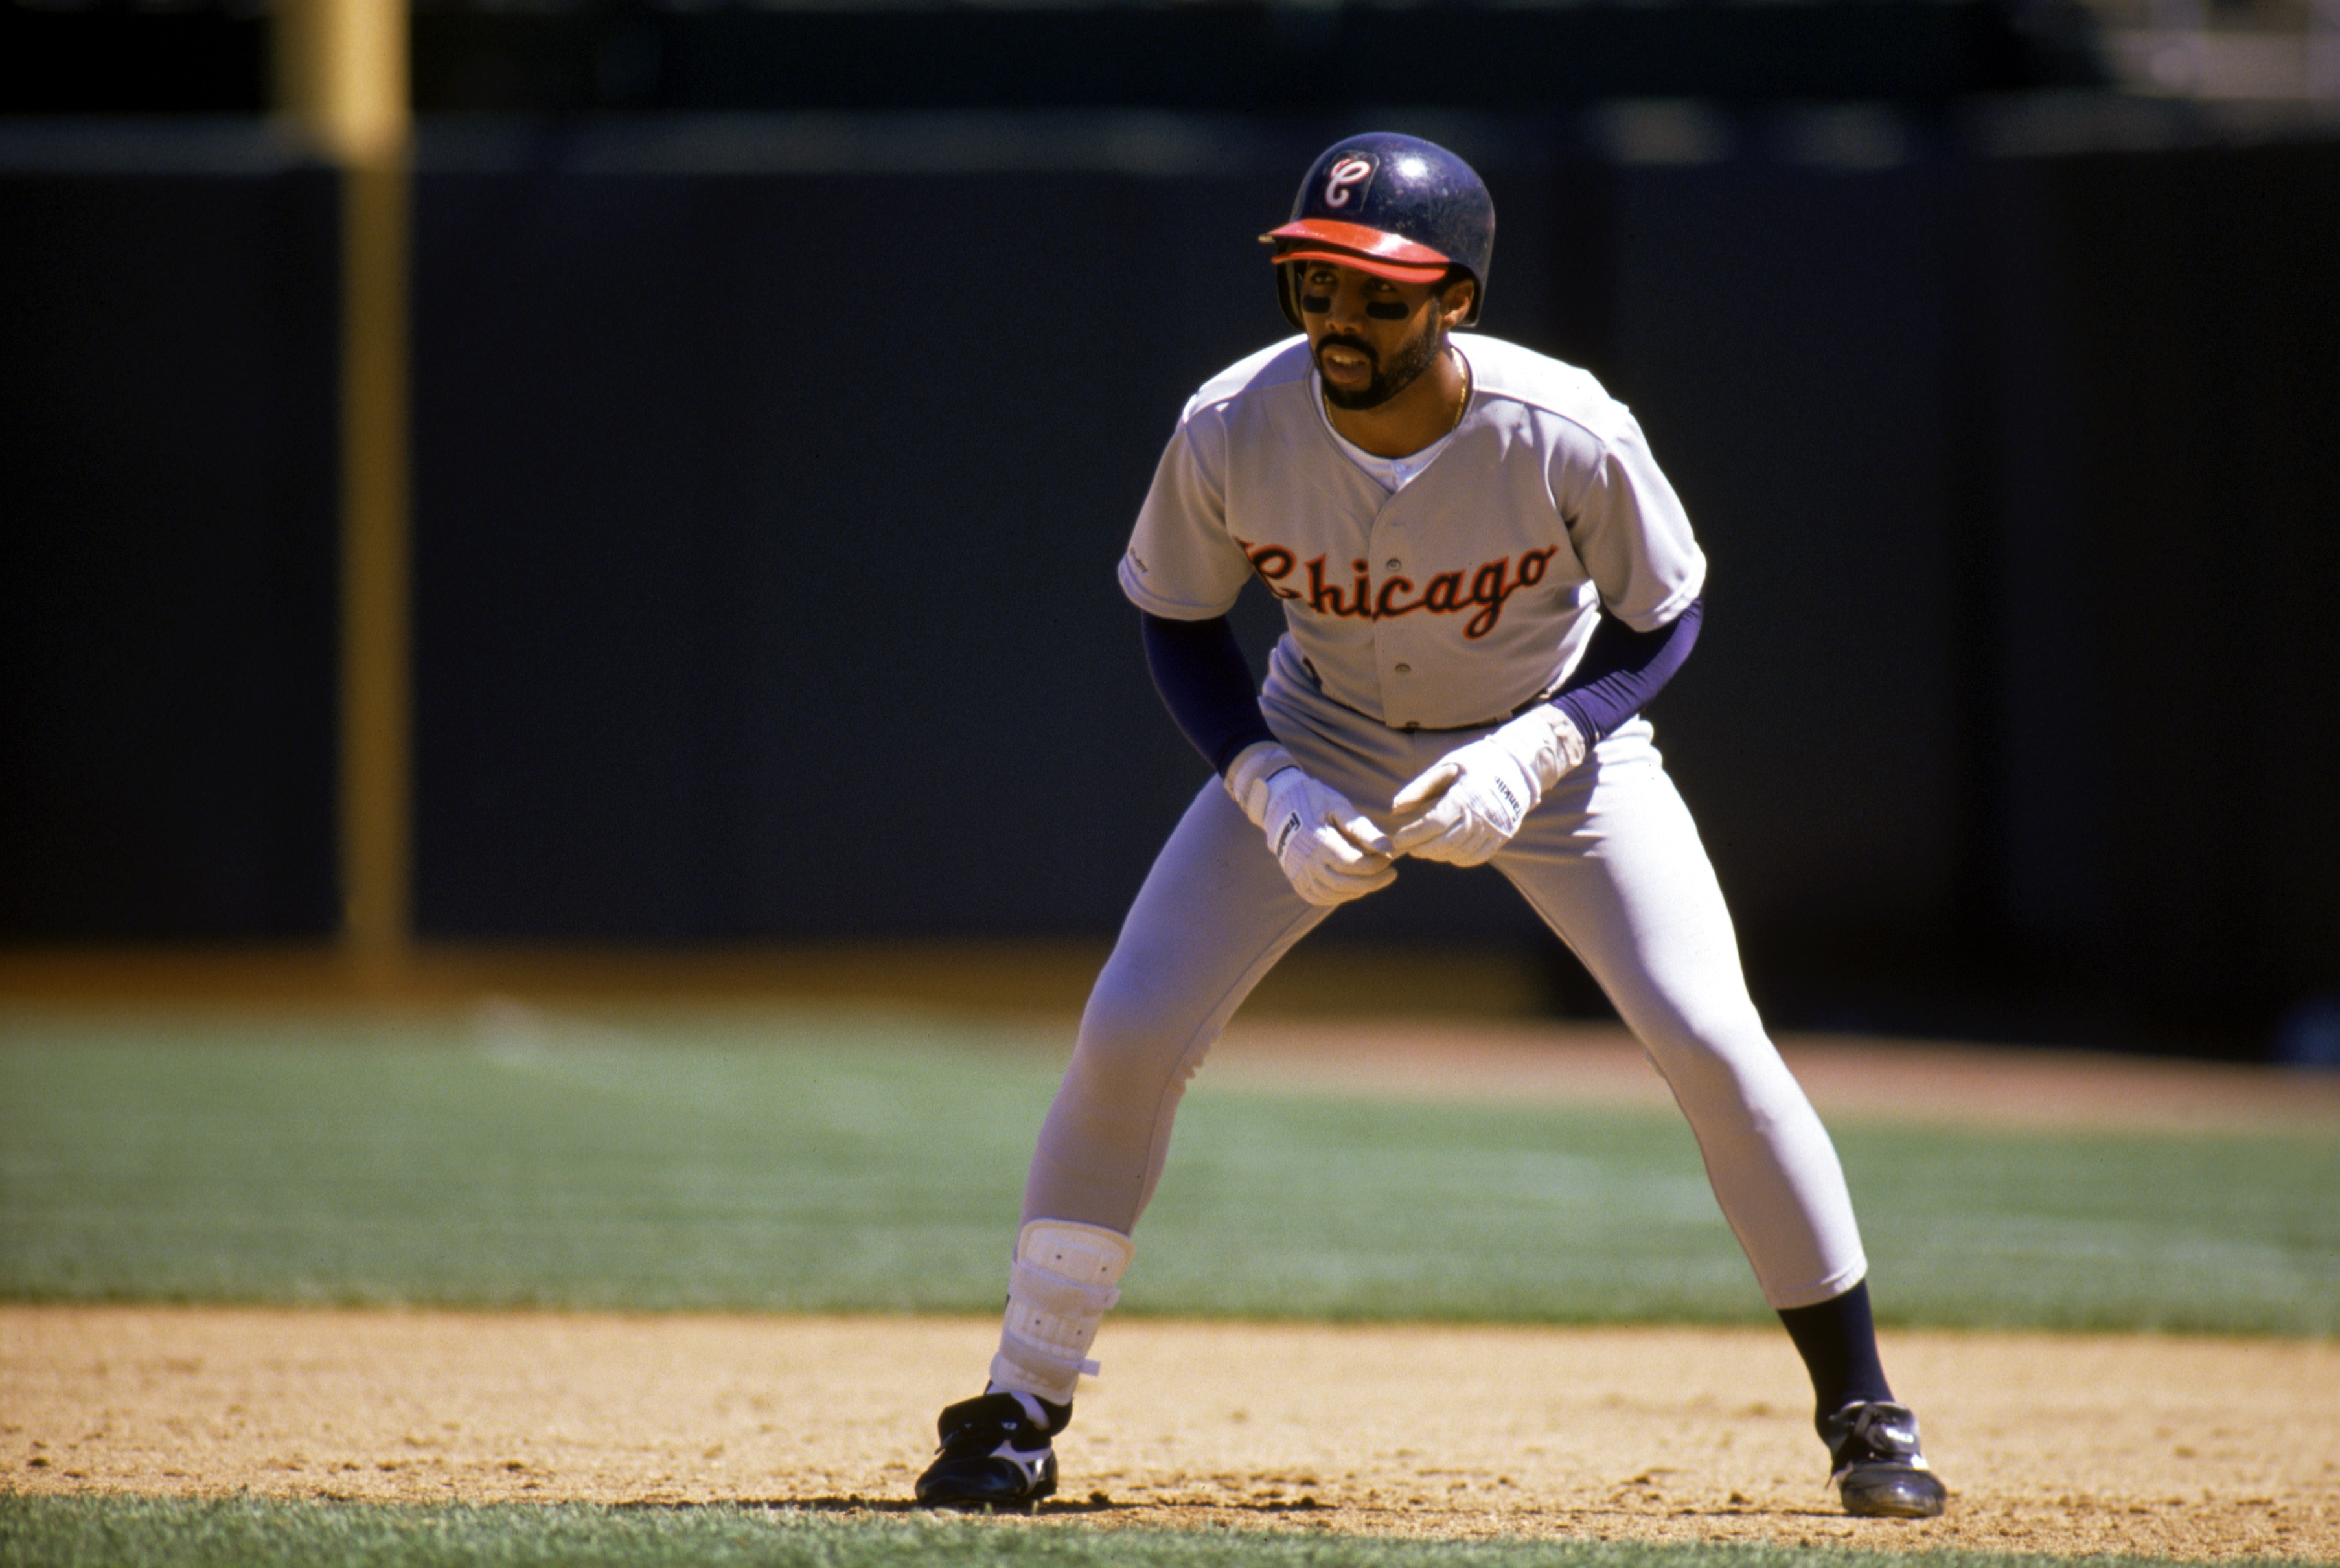 Harold Baines leads off base